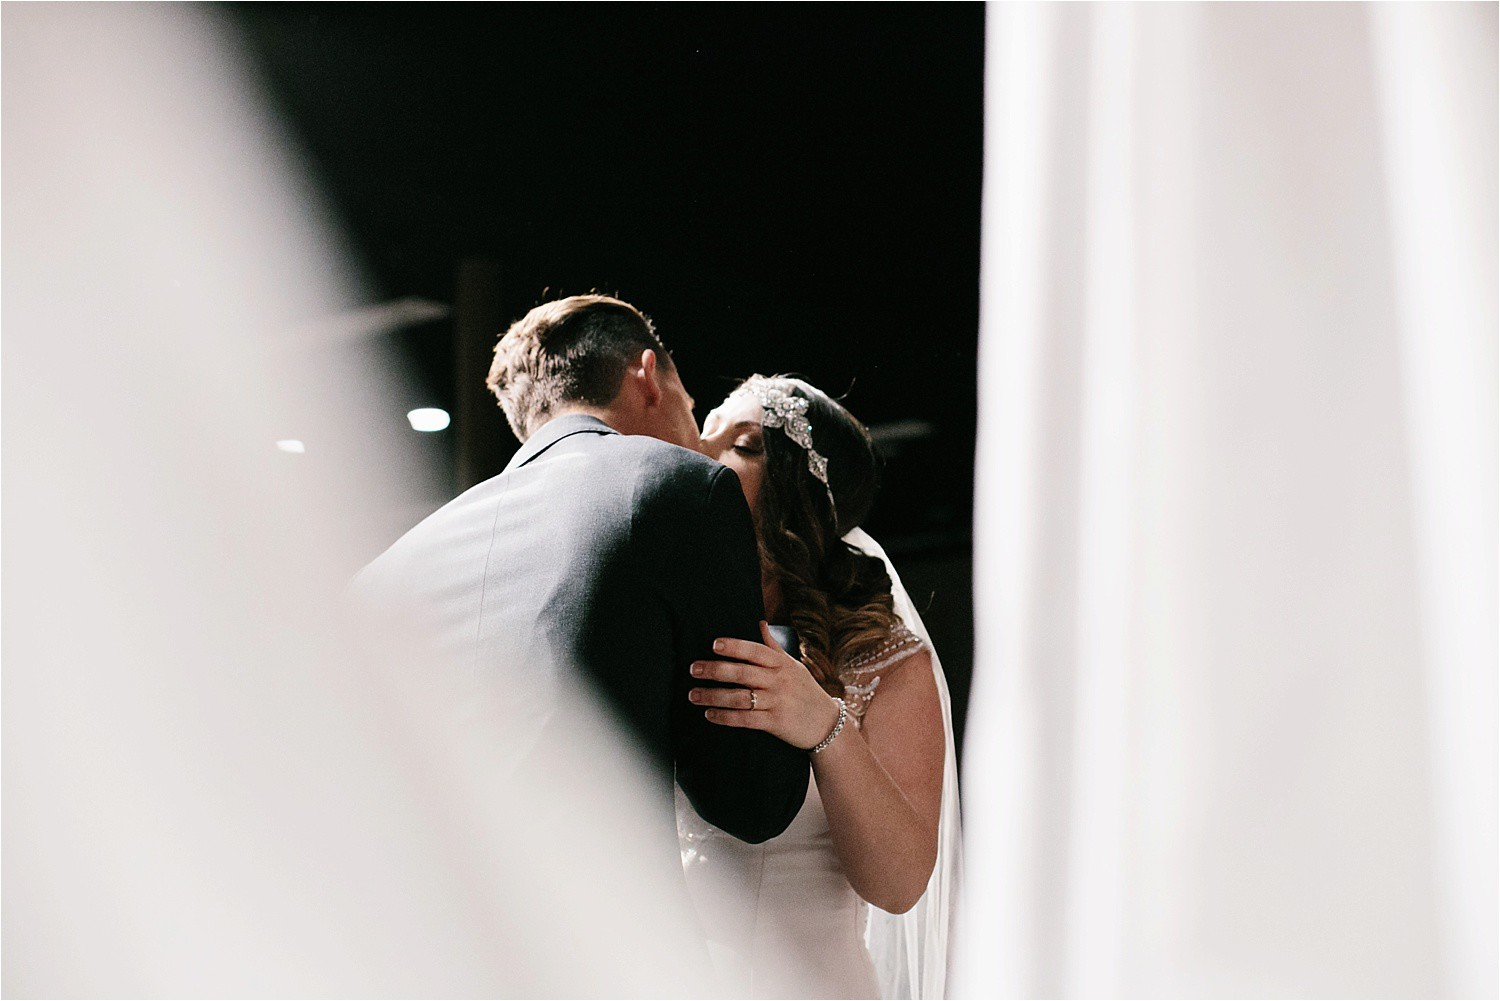 whittney-drew-__-an-intimate-wine-and-navy-wedding-in-an-industrial-venue-at-loft-123-in-paris-tx-by-north-texas-wedding-photographer-rachel-meagan-photography-_-063